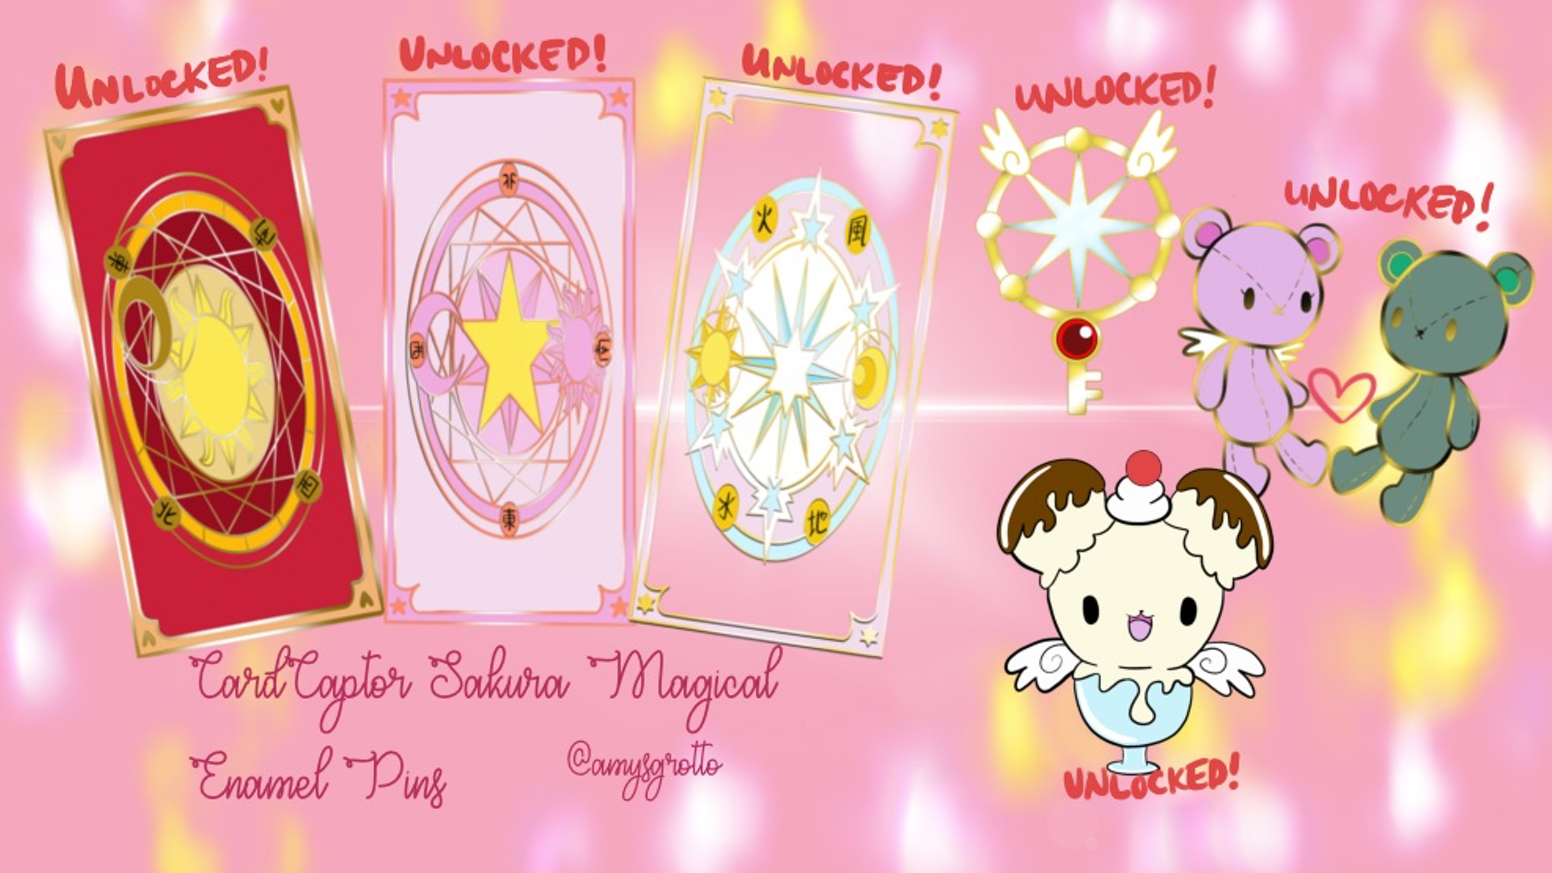 Cardcaptor sakura magical card accessories enamel pin pins by thank you so much for helping me bring these magical pins to life you can kristyandbryce Gallery